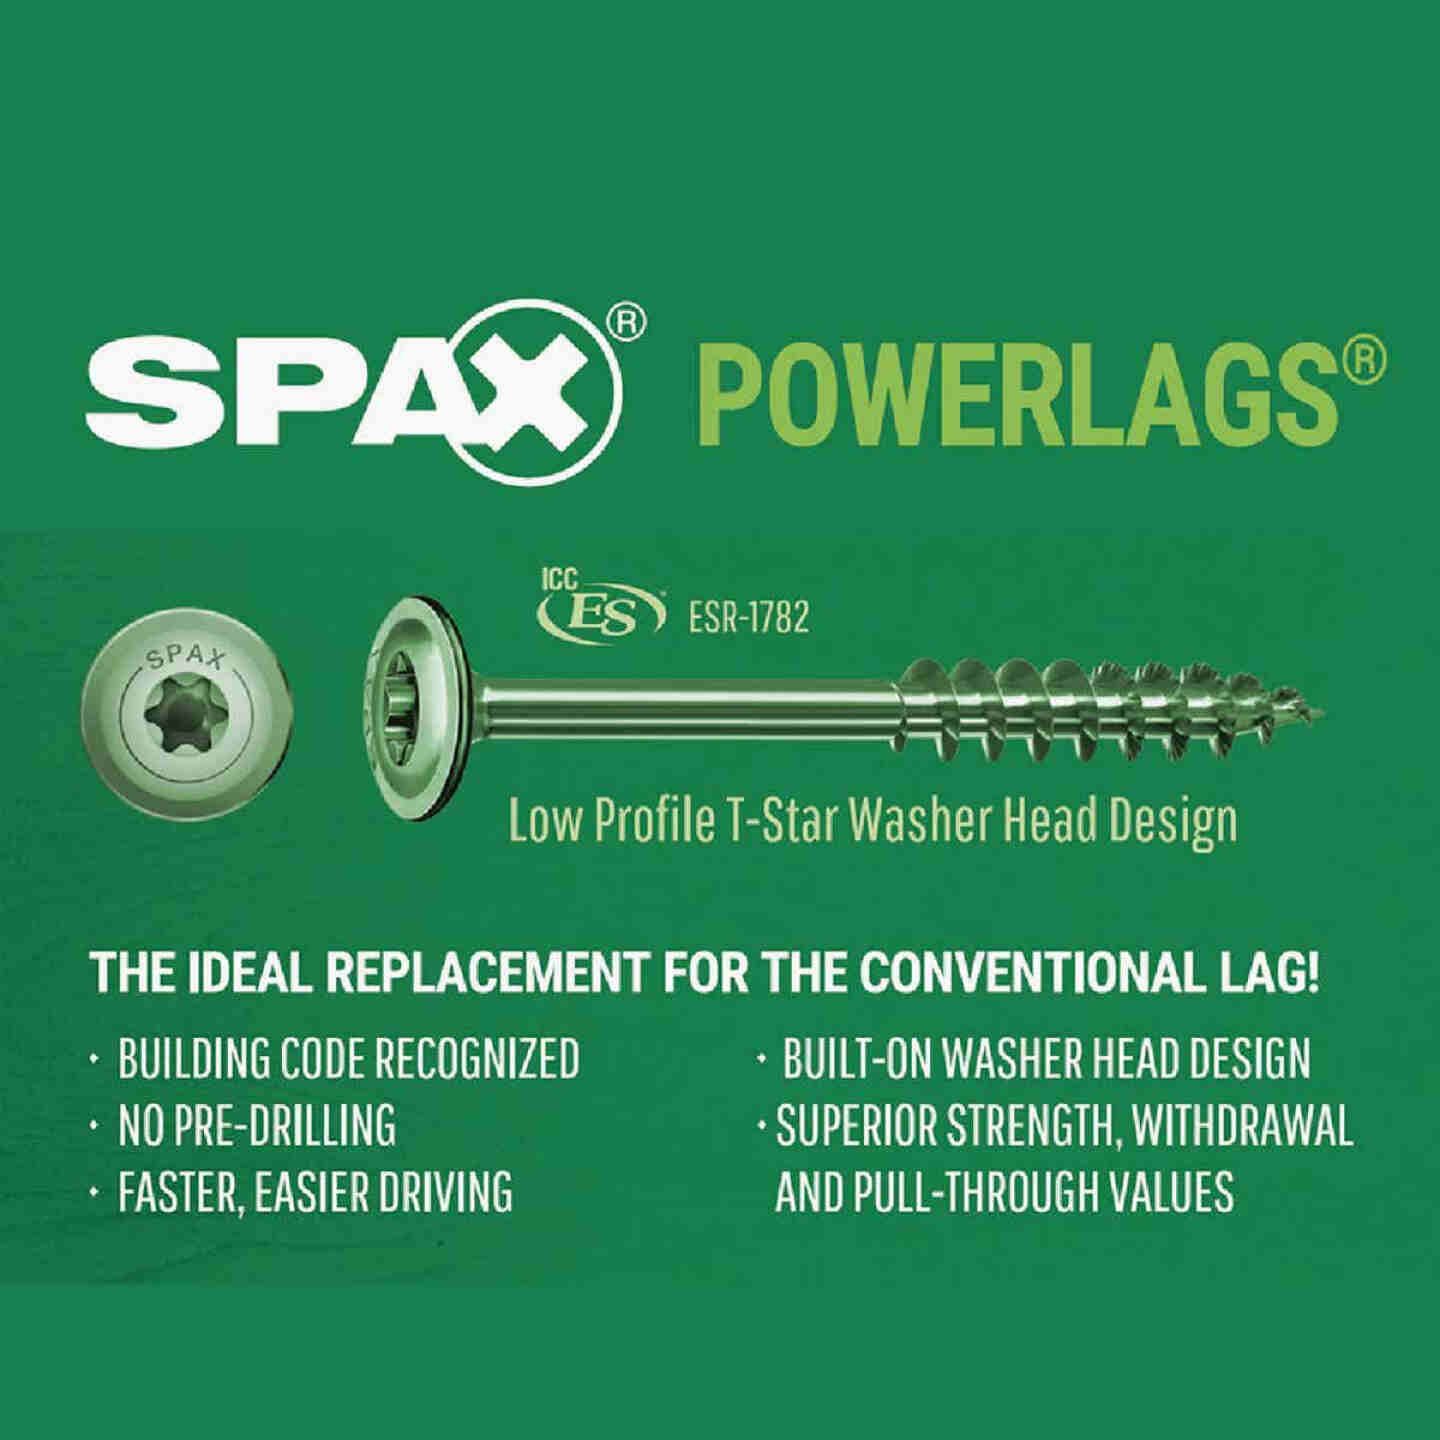 Spax PowerLags 5/16 In. x 5 In. Washer Head Exterior Structure Screw (12 Ct.) Image 4